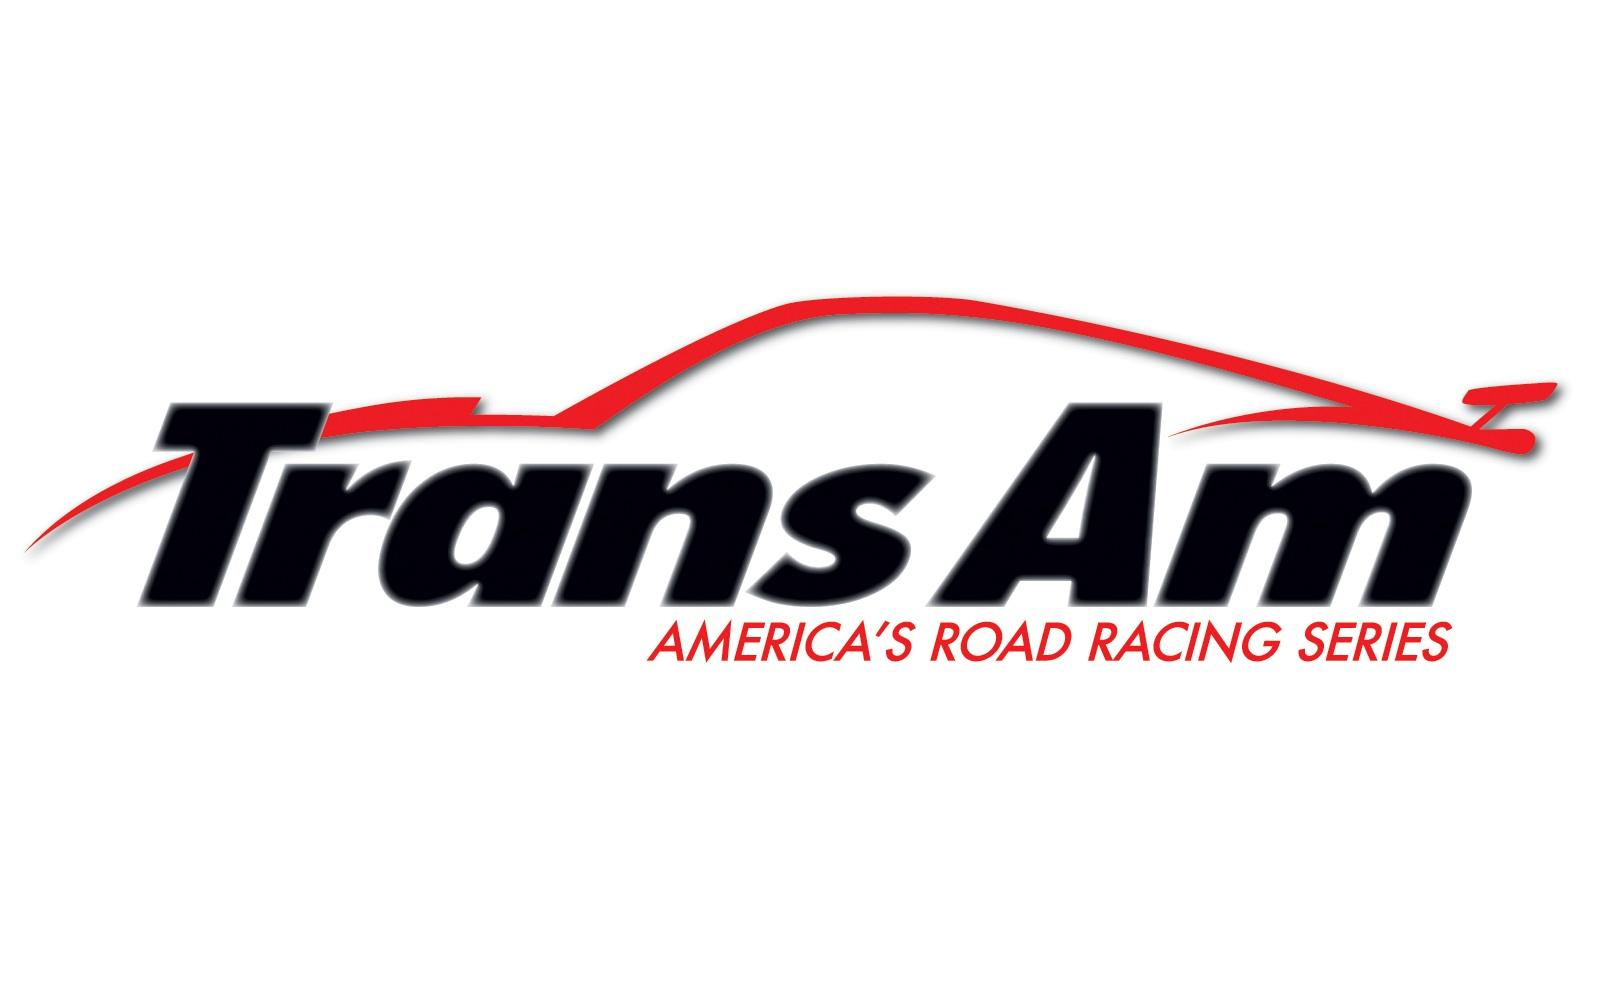 Ave Gets Fourth Straight Trans Am Series Win in Grueling Race at Trois-Rivieres